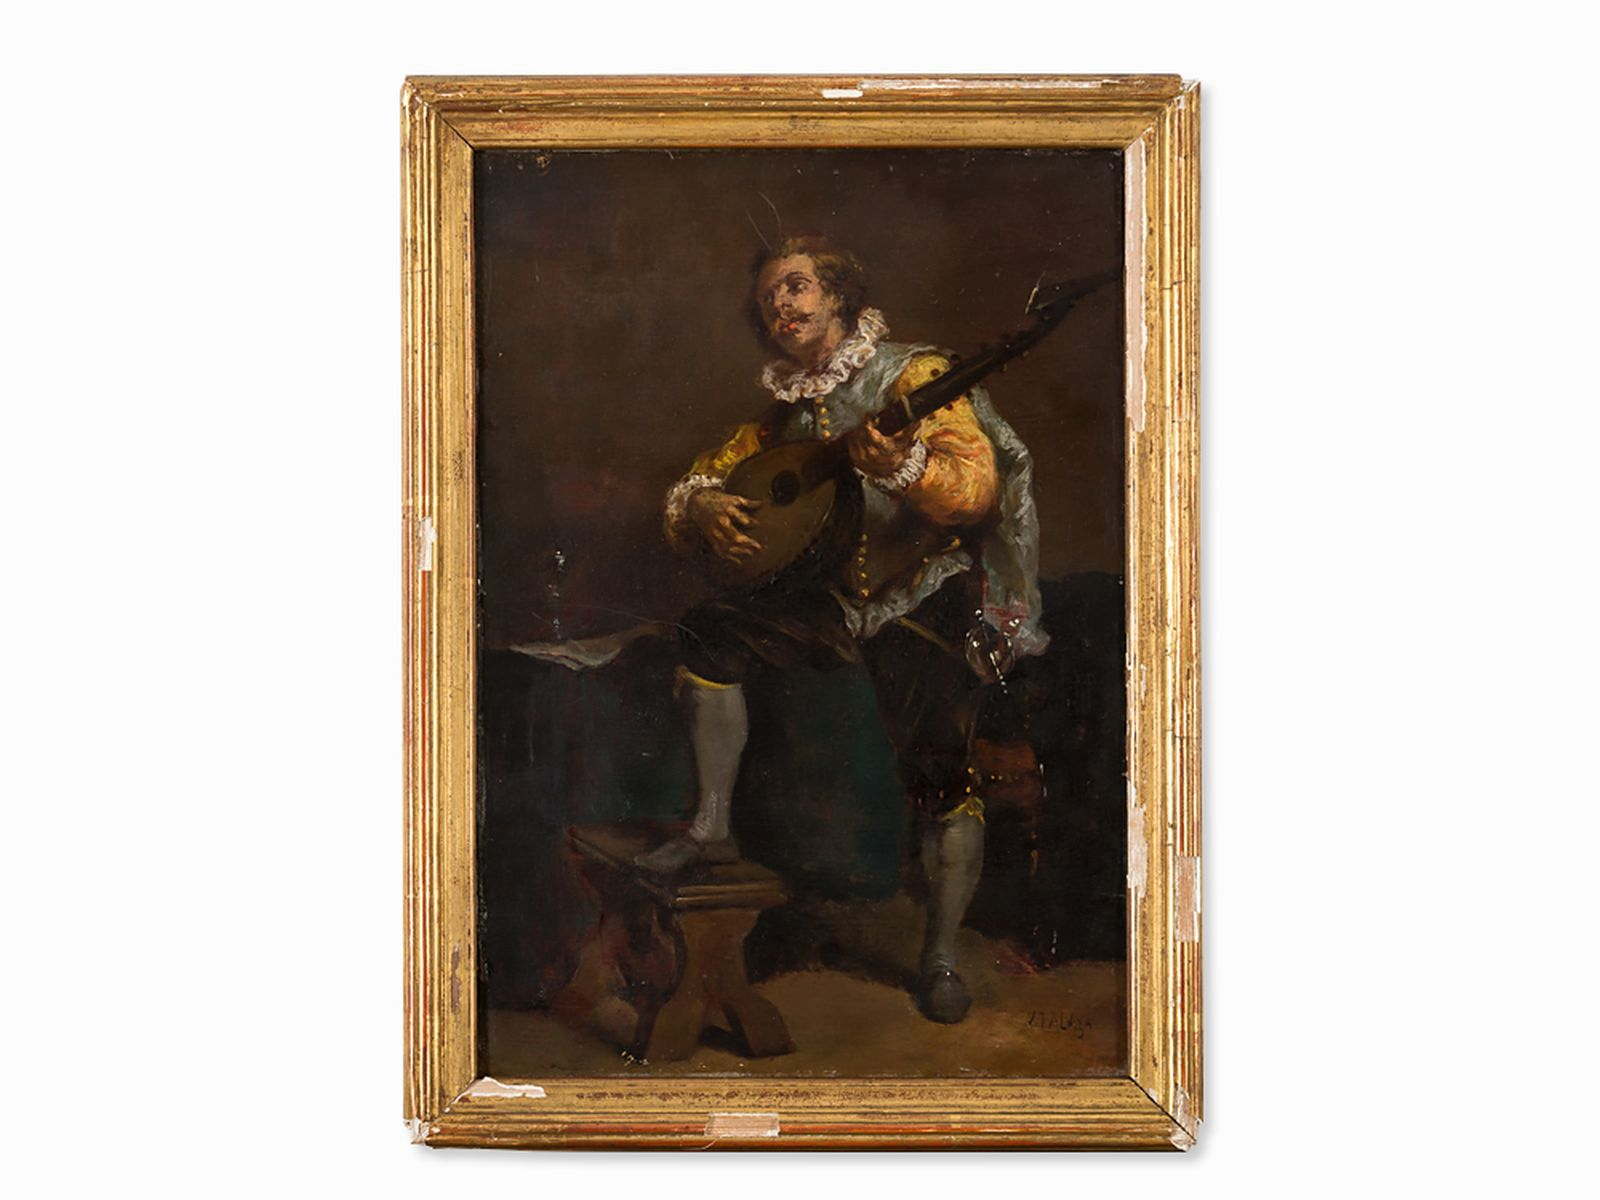 #5 Enrique Atalaya (1851-1914), Man Playing The Lute, Oil, c. 1880 | Enrique Atalaya (1851-1914), Image